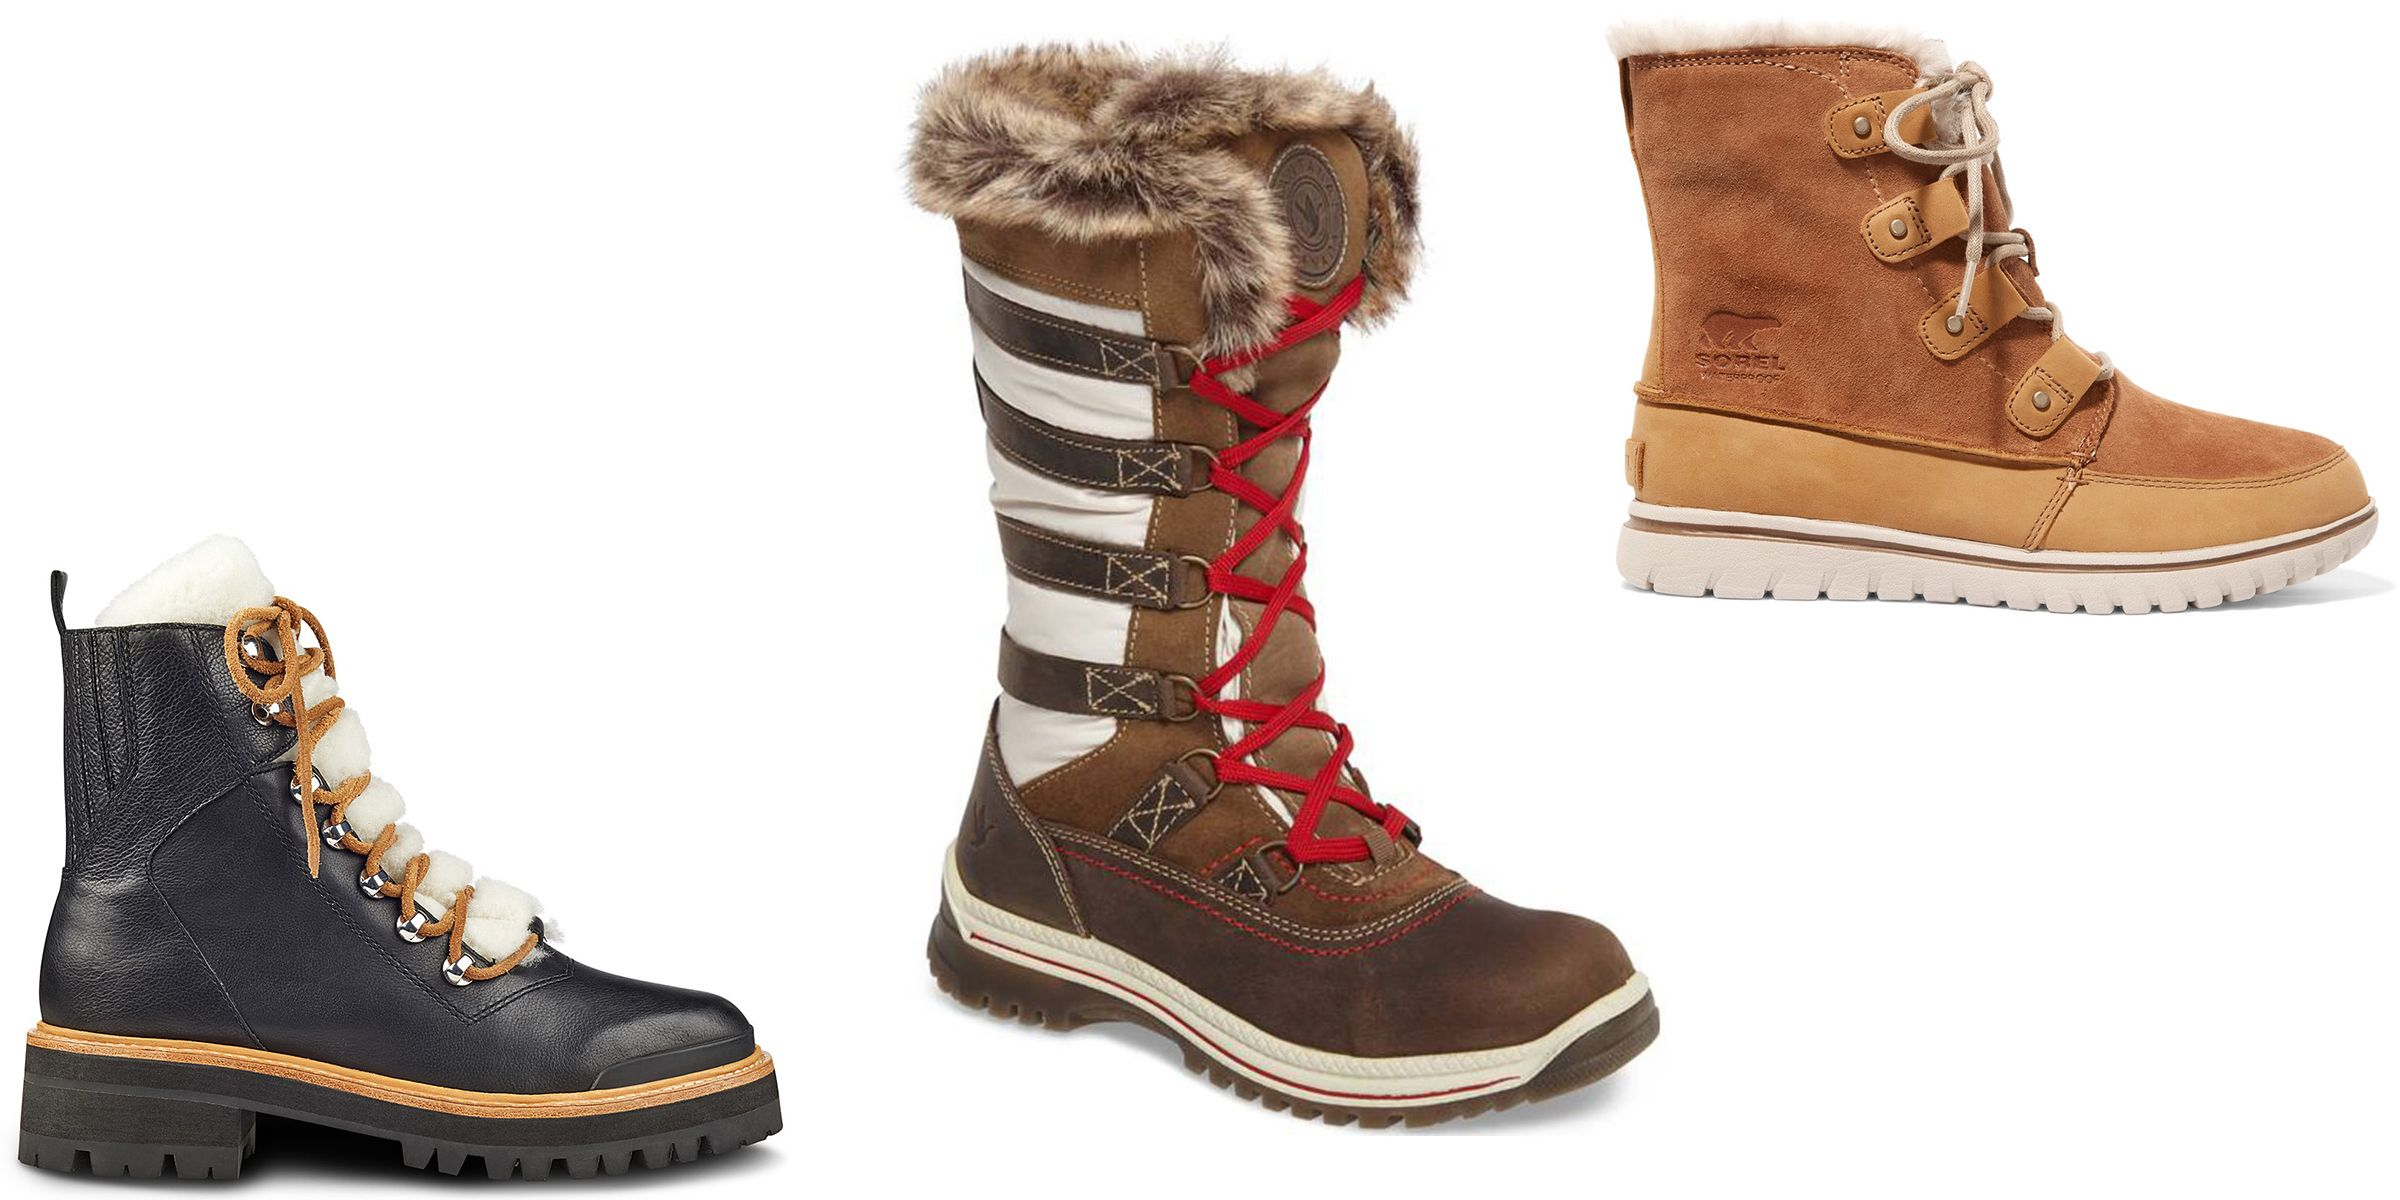 20 Snow Boots You'll Actually Want To Wear All Day Long